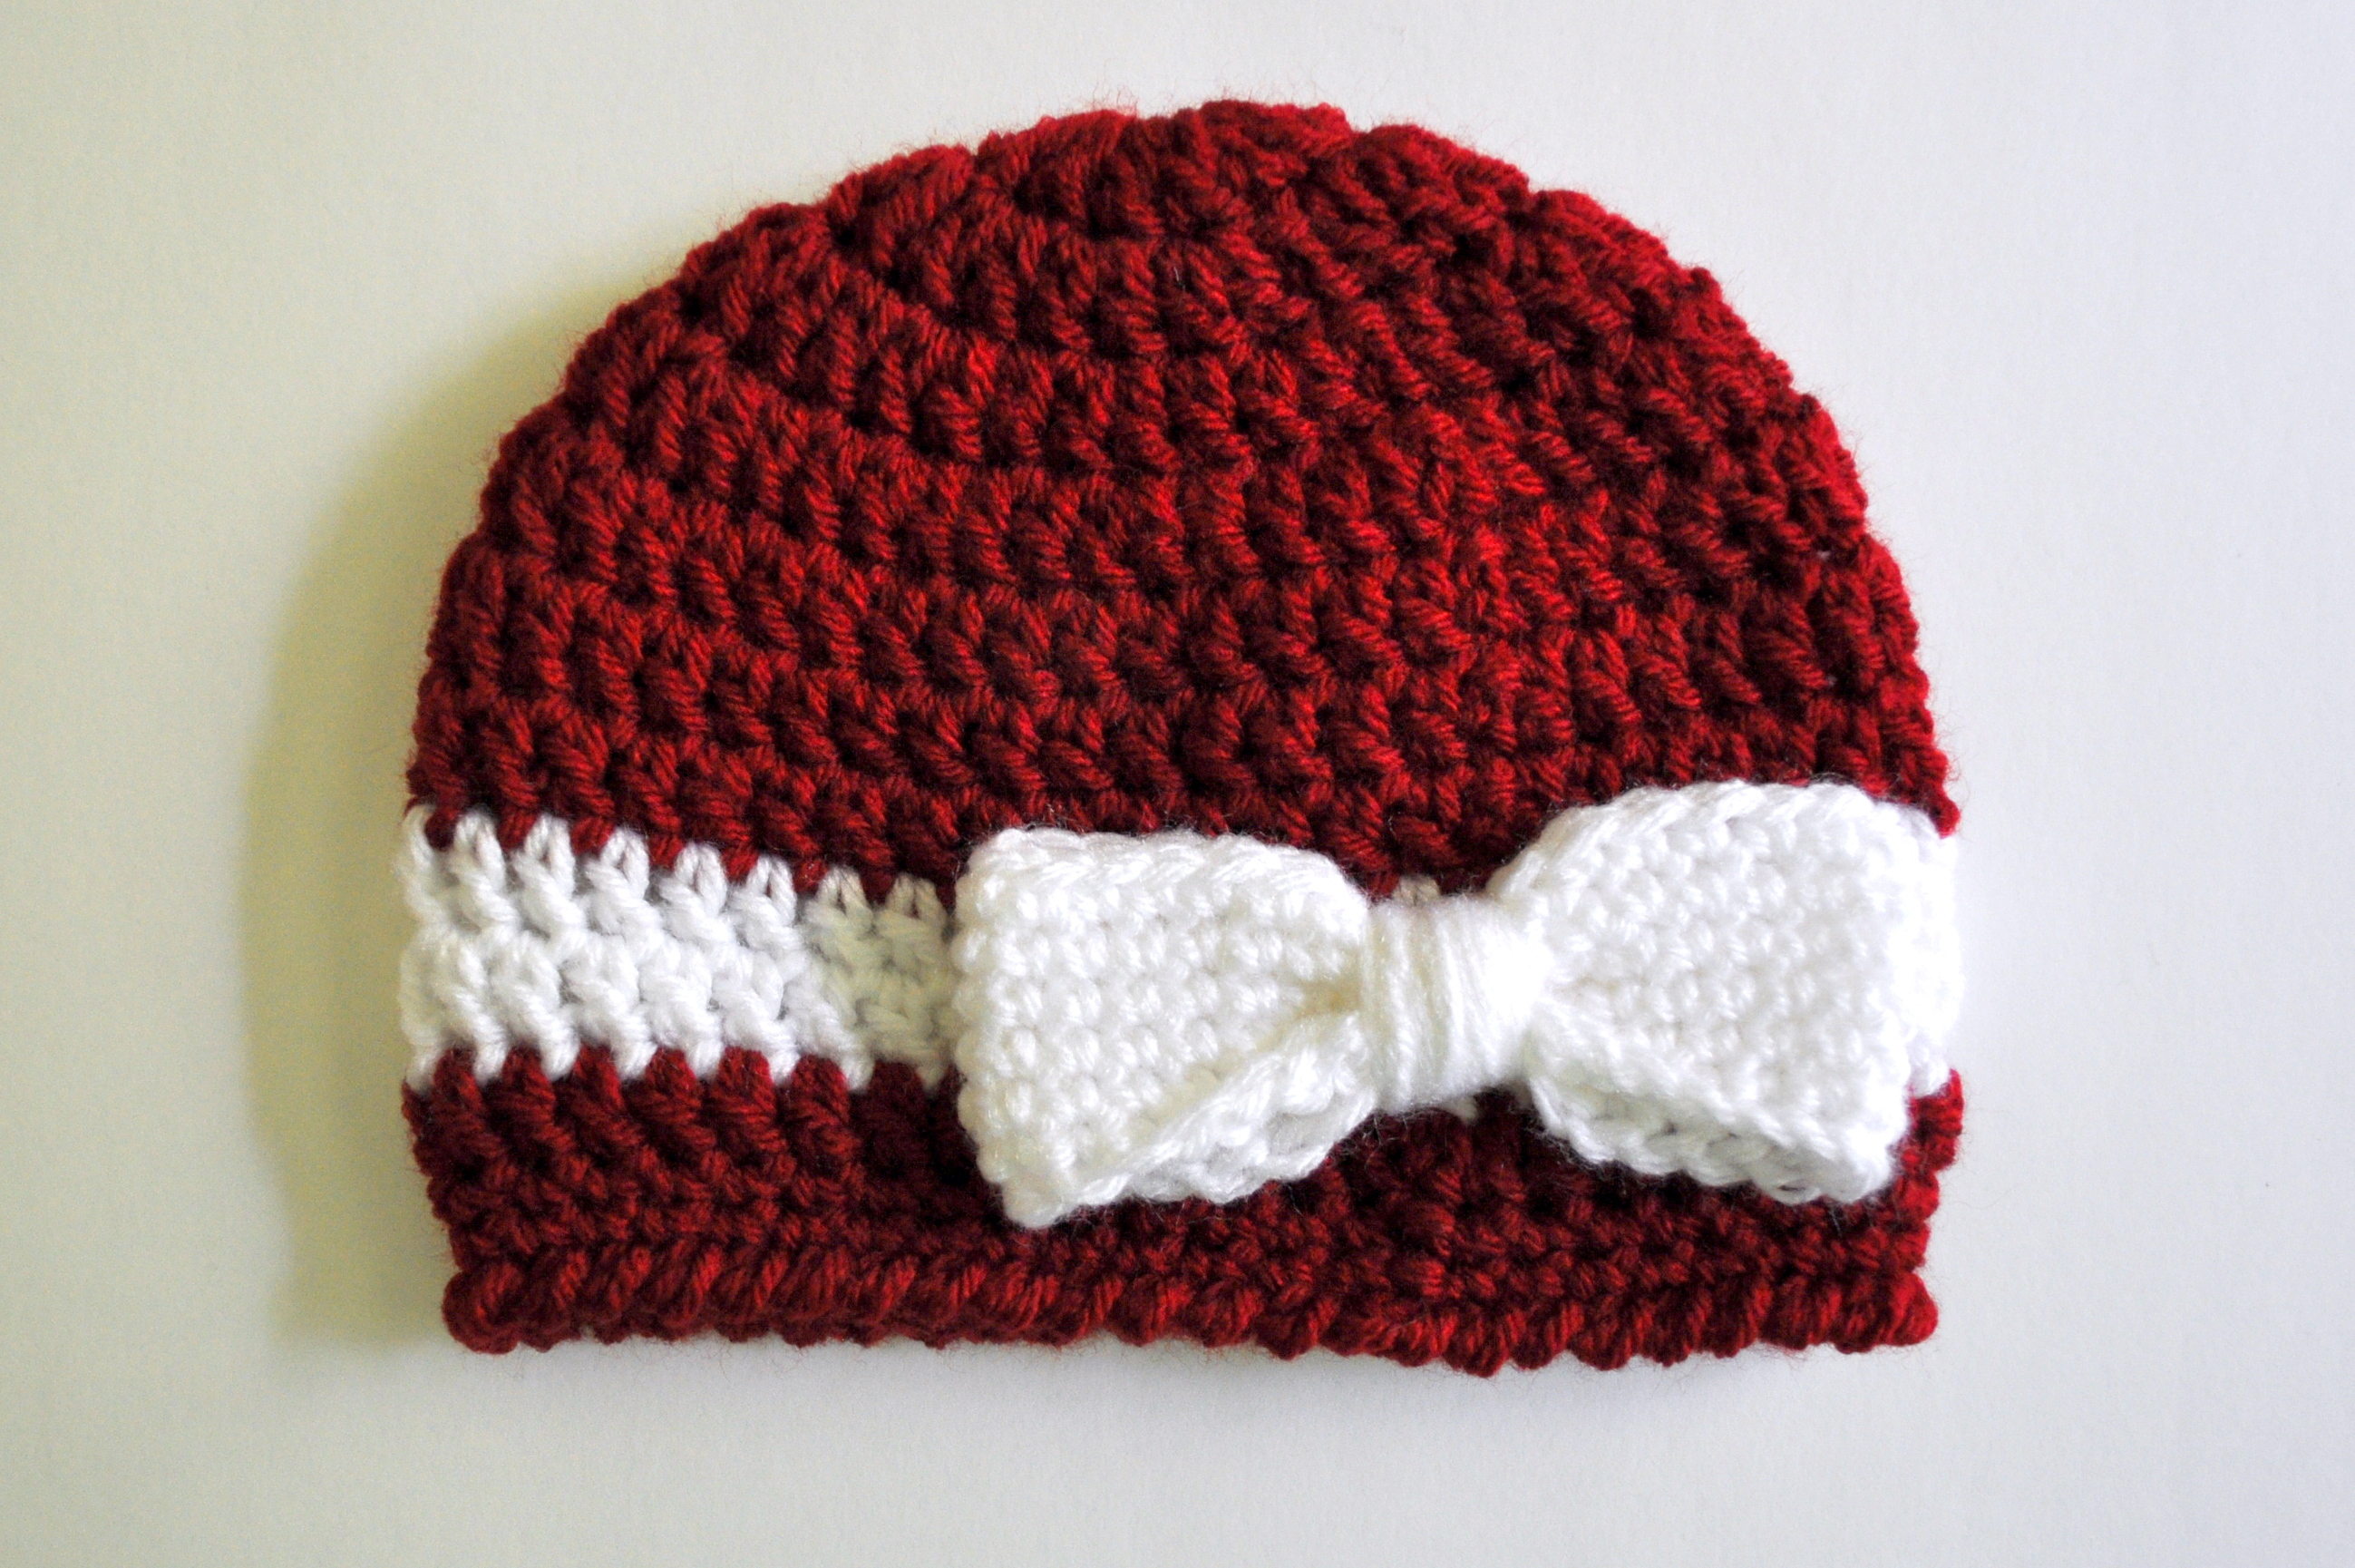 Crocheting A Hat : Free Pattern: Crochet Bow and Ribbon Baby Hat Classy Crochet